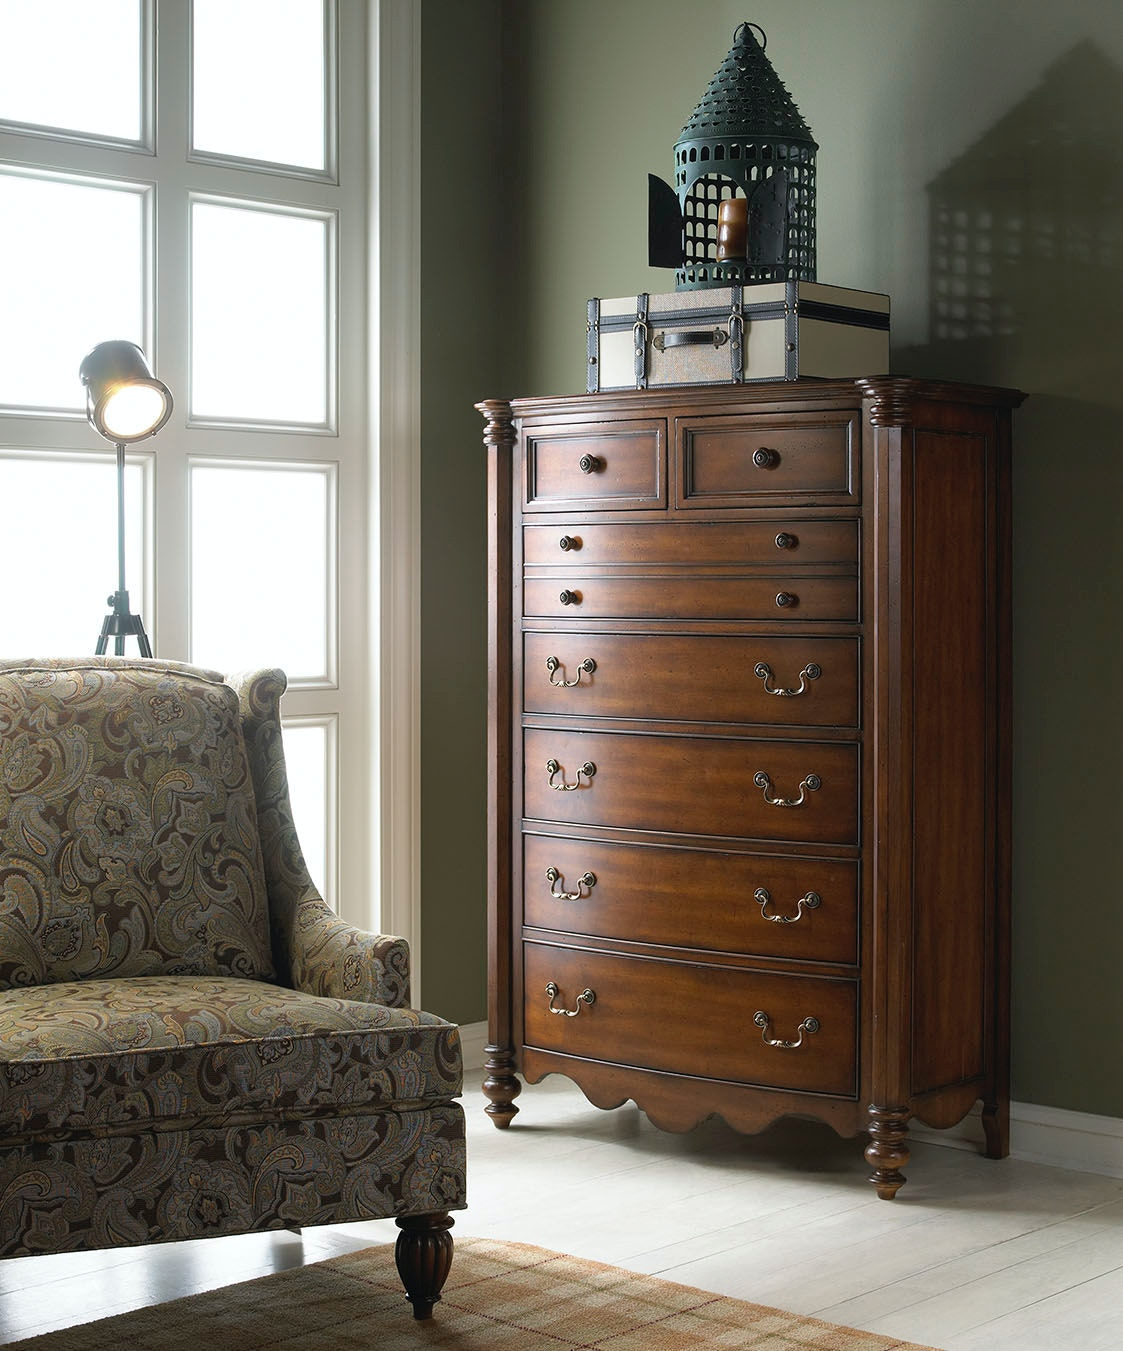 Fine Furniture Design Bedroom Drawer Chest 1050 110   Kalin Home  Furnishings   Ormond Beach, FL